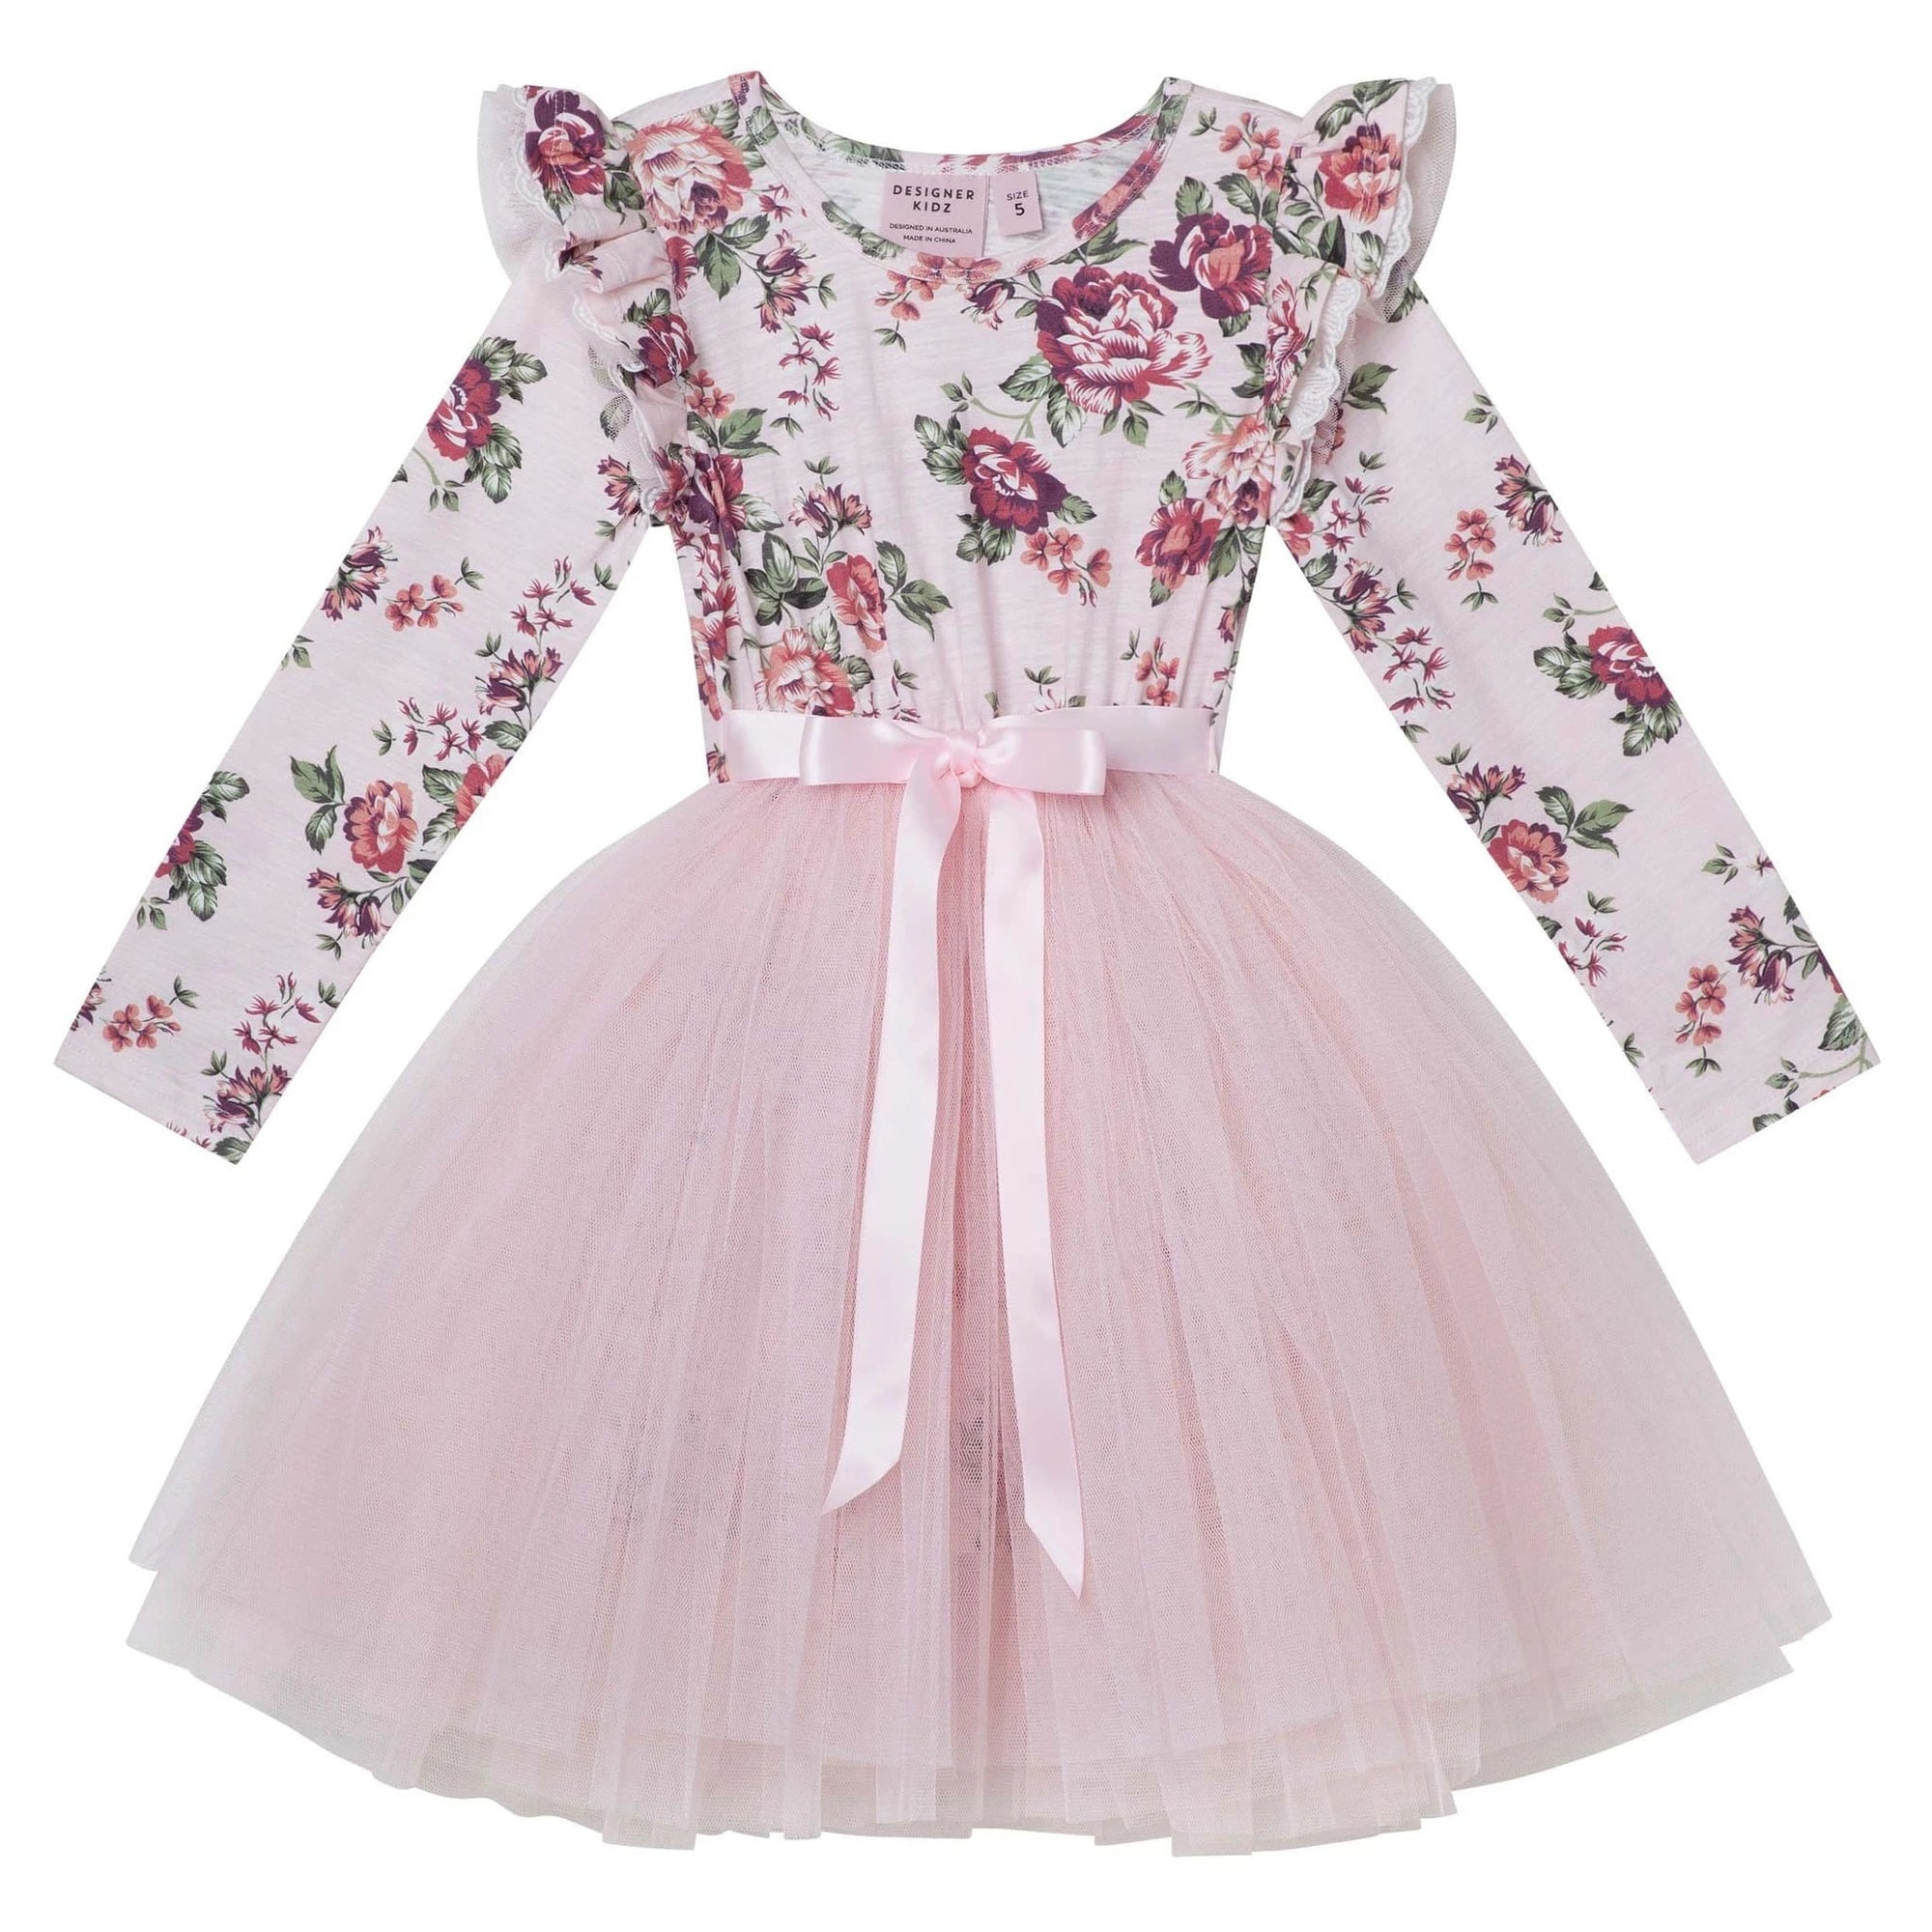 Pearl Floral L/S Tutu Dress - Pink